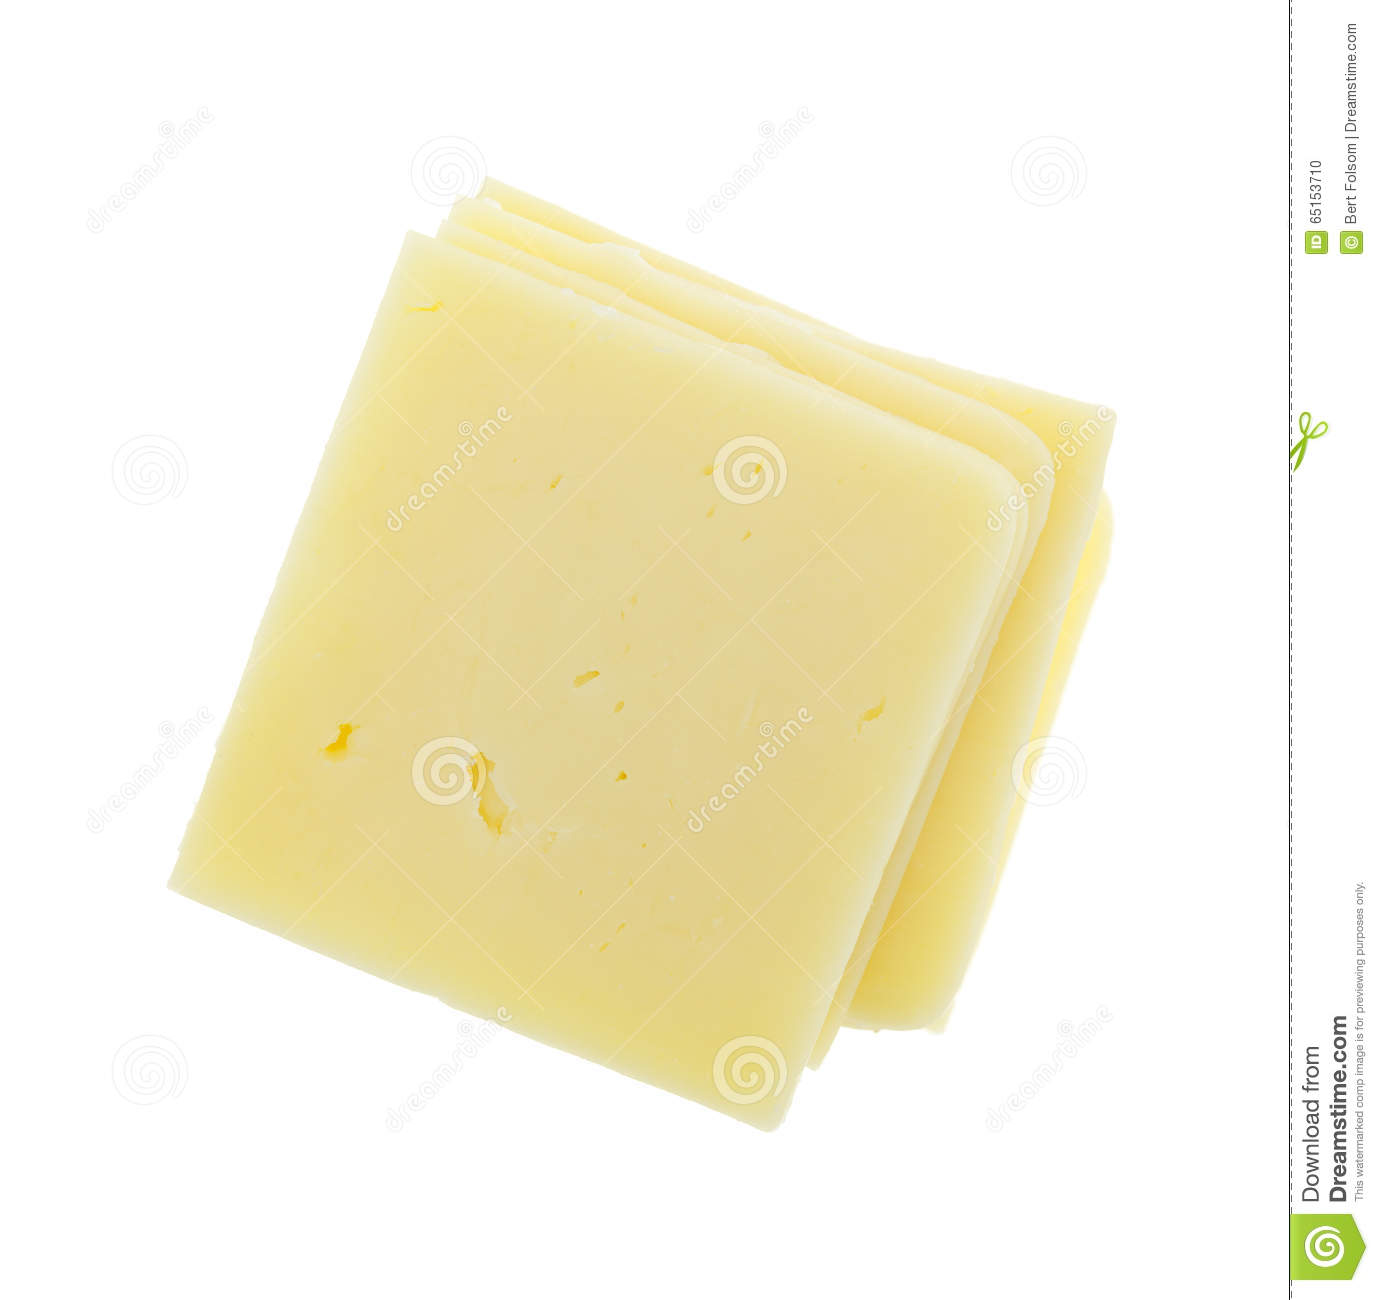 how to cut cheese slices